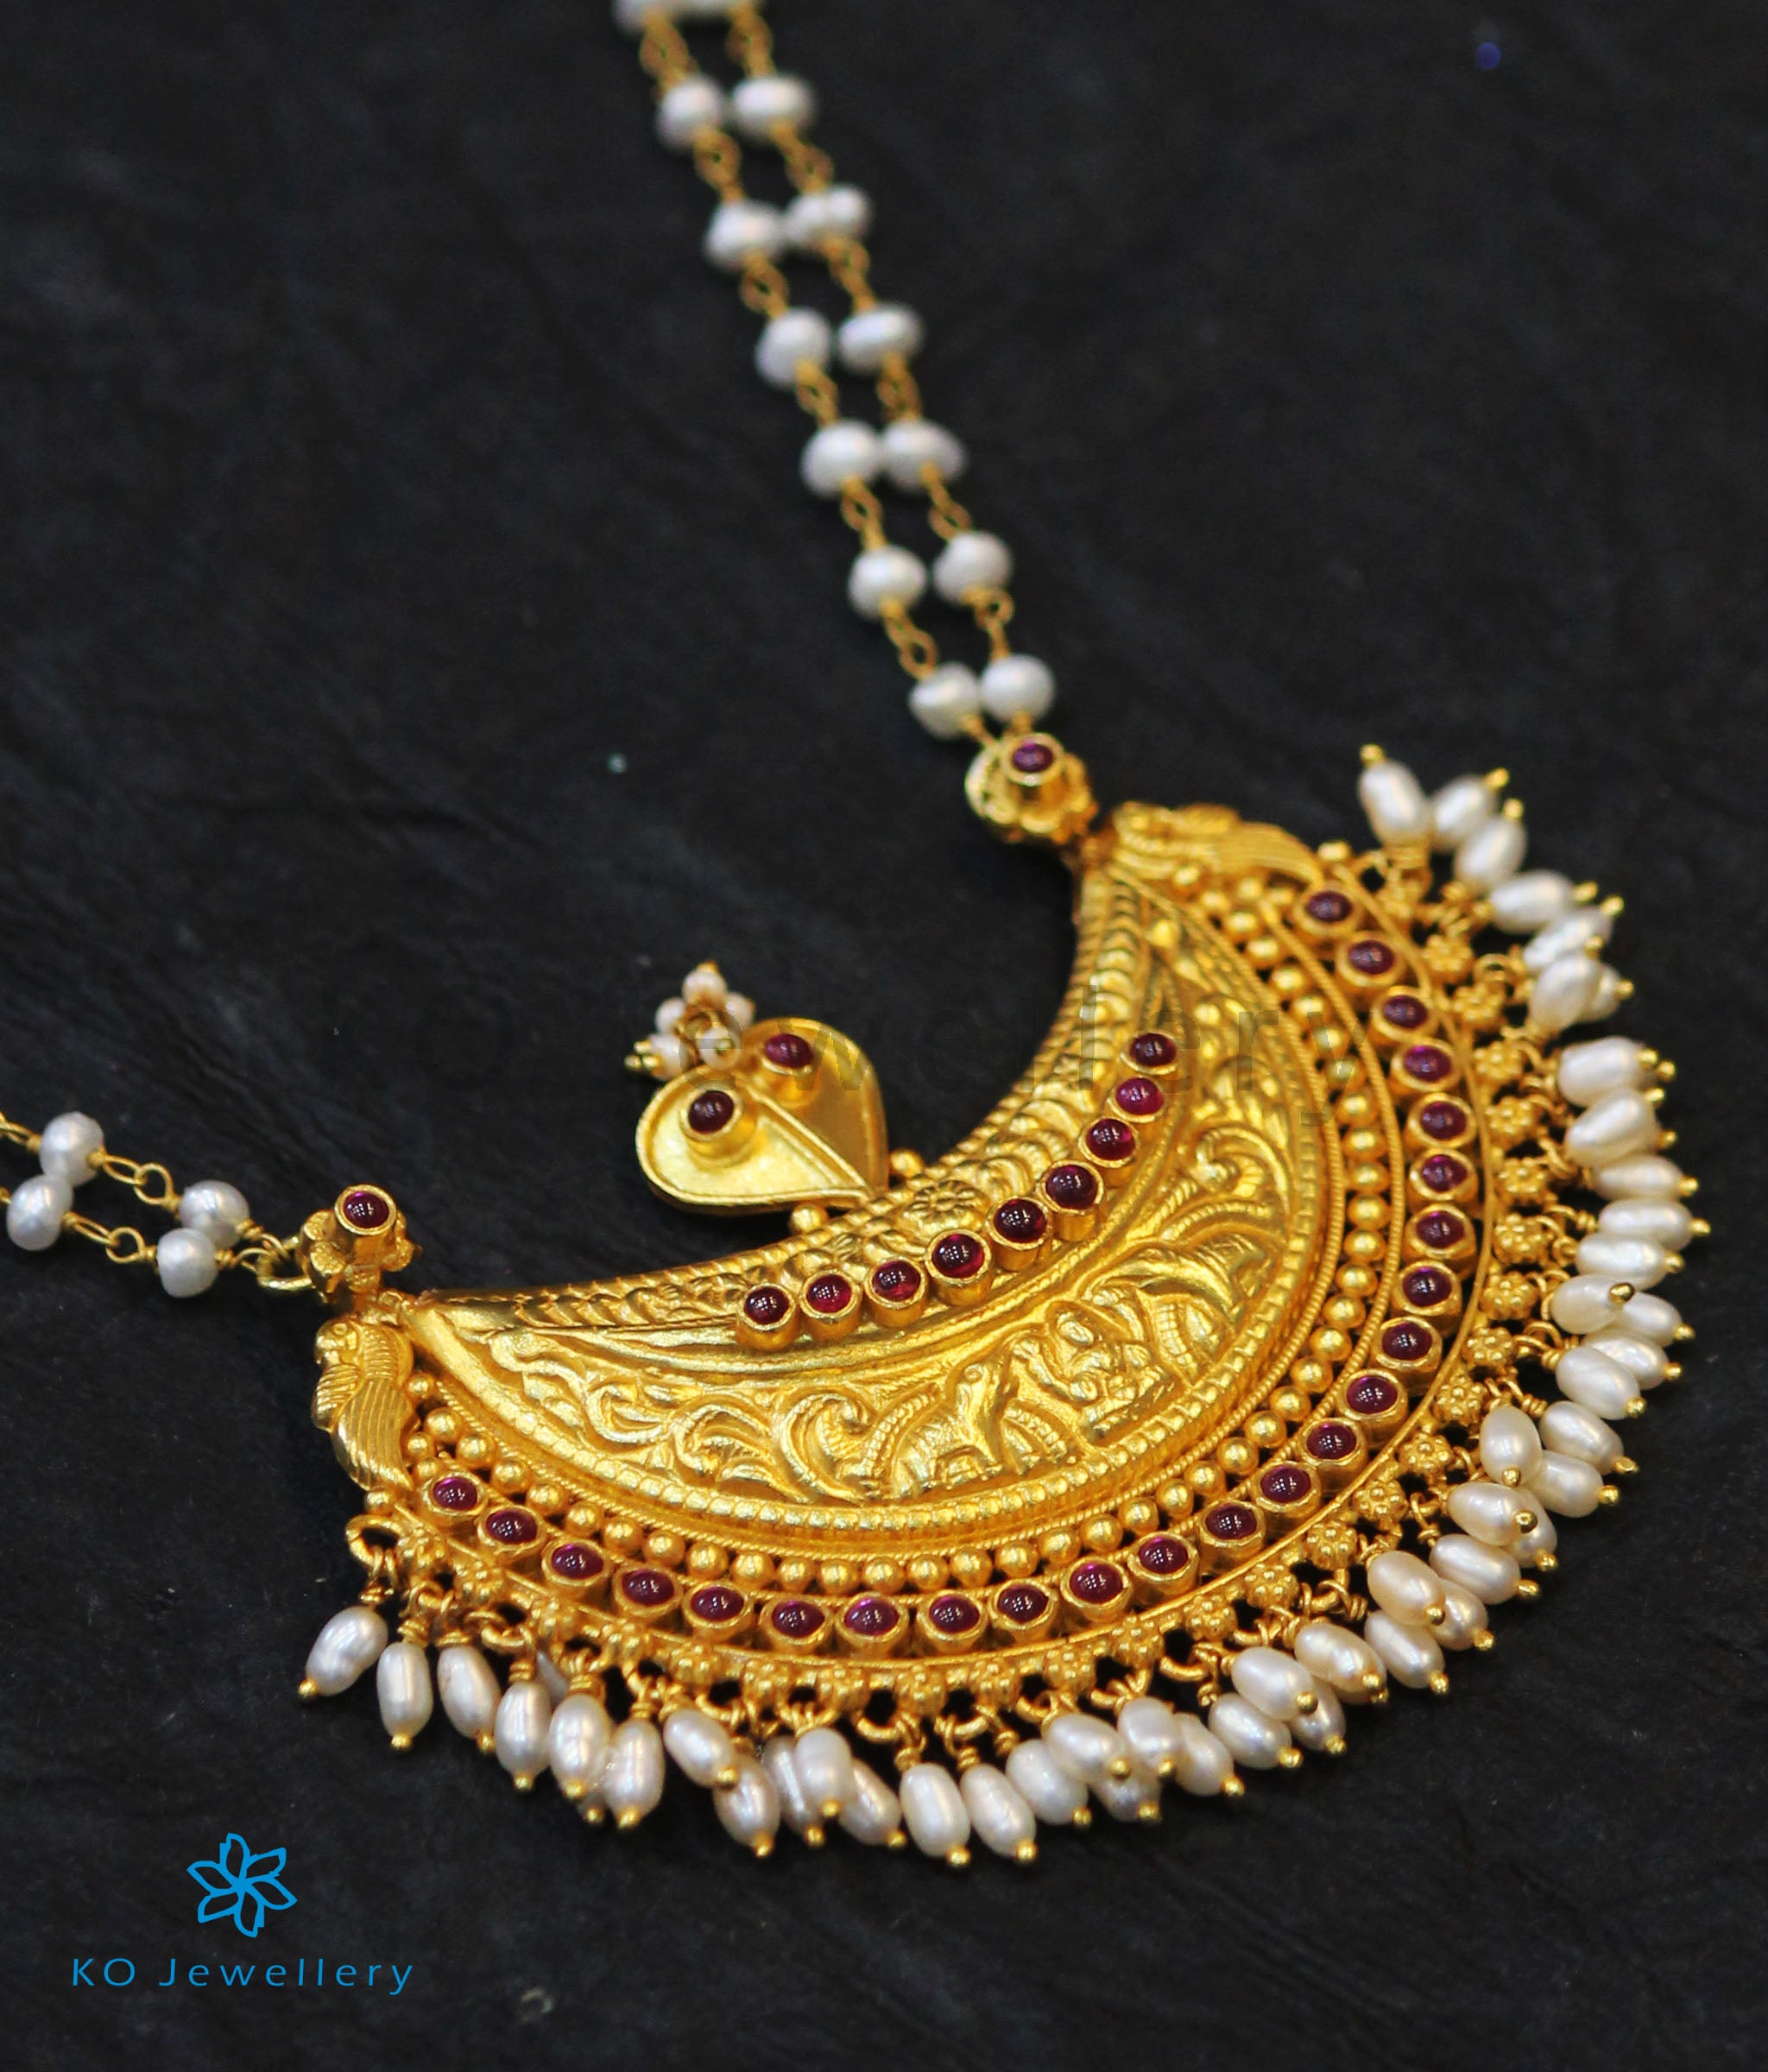 Temple Jewellery - Buy authentic temple jewelry designs online - KO